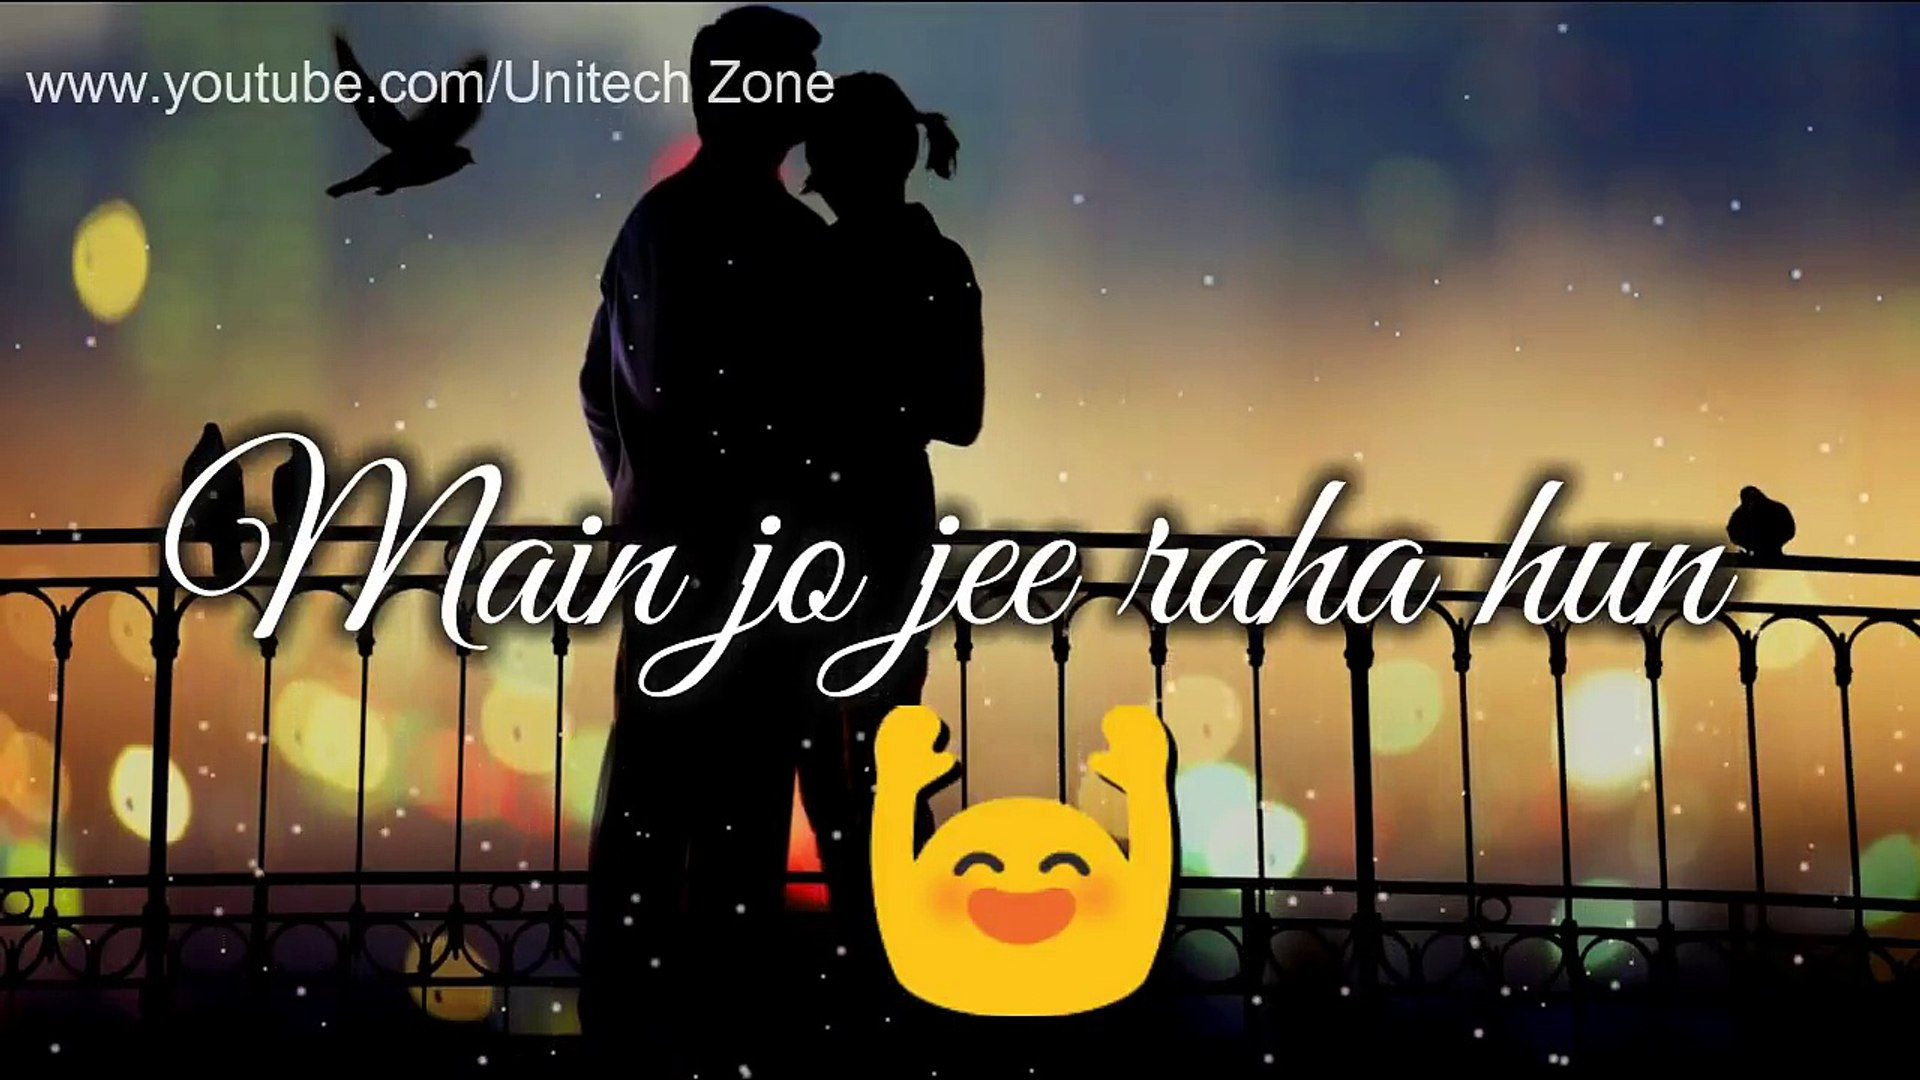 whatsapp status hindi, whatsapp status attitude, whatsapp status album song,